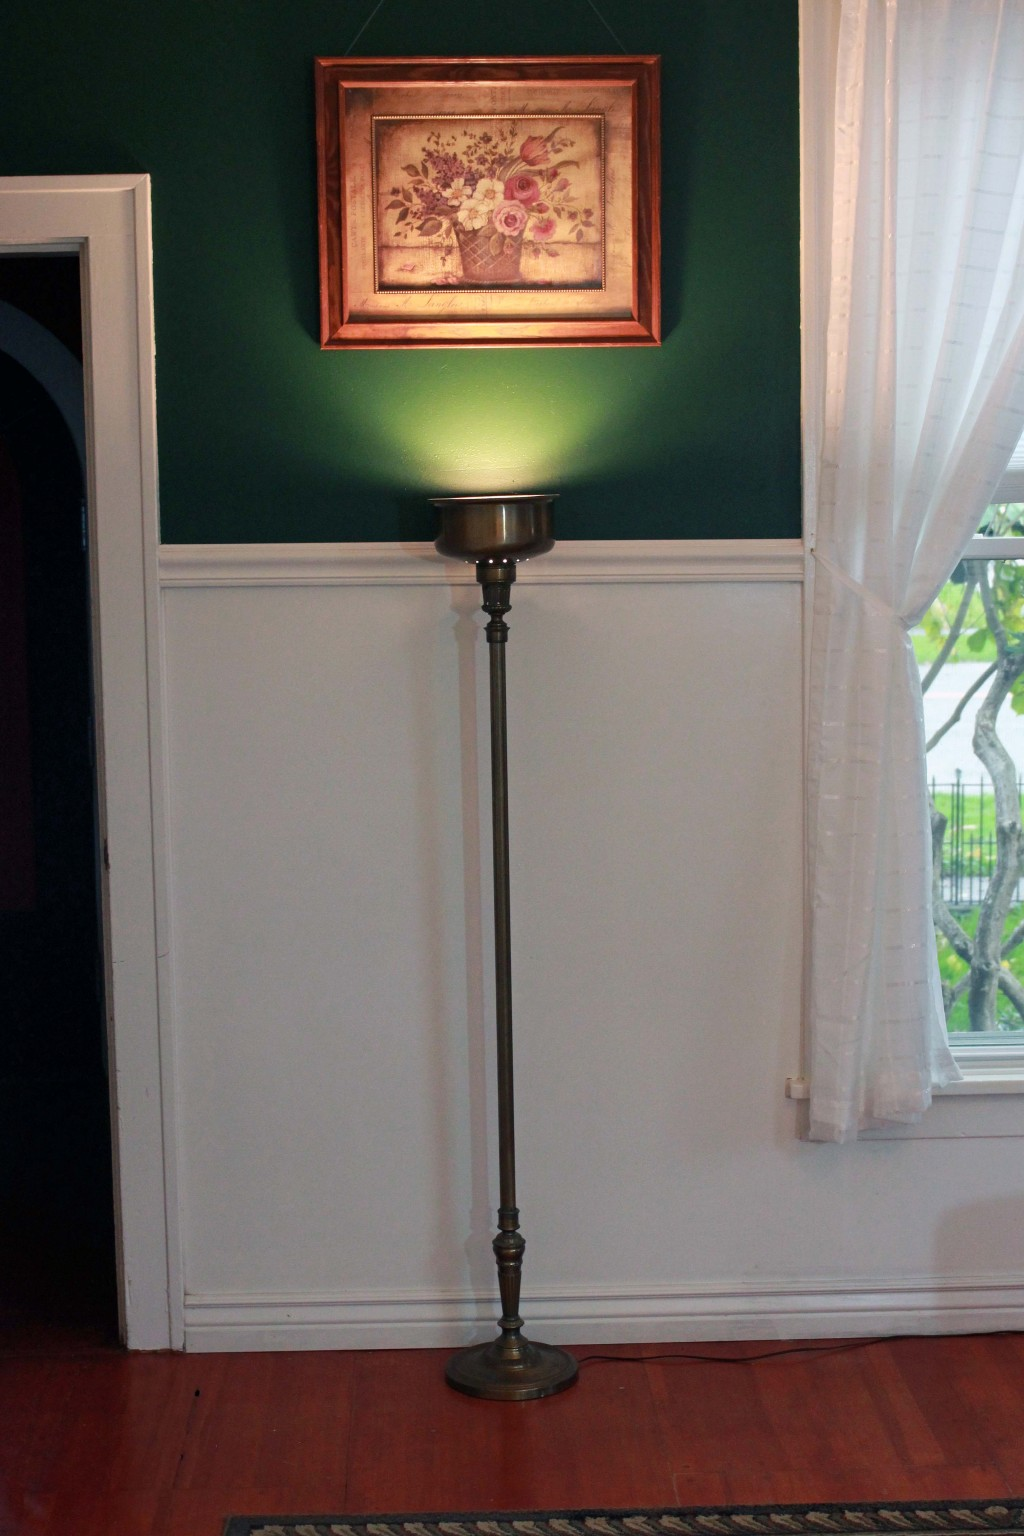 Vintage Floor Lamp and Painting